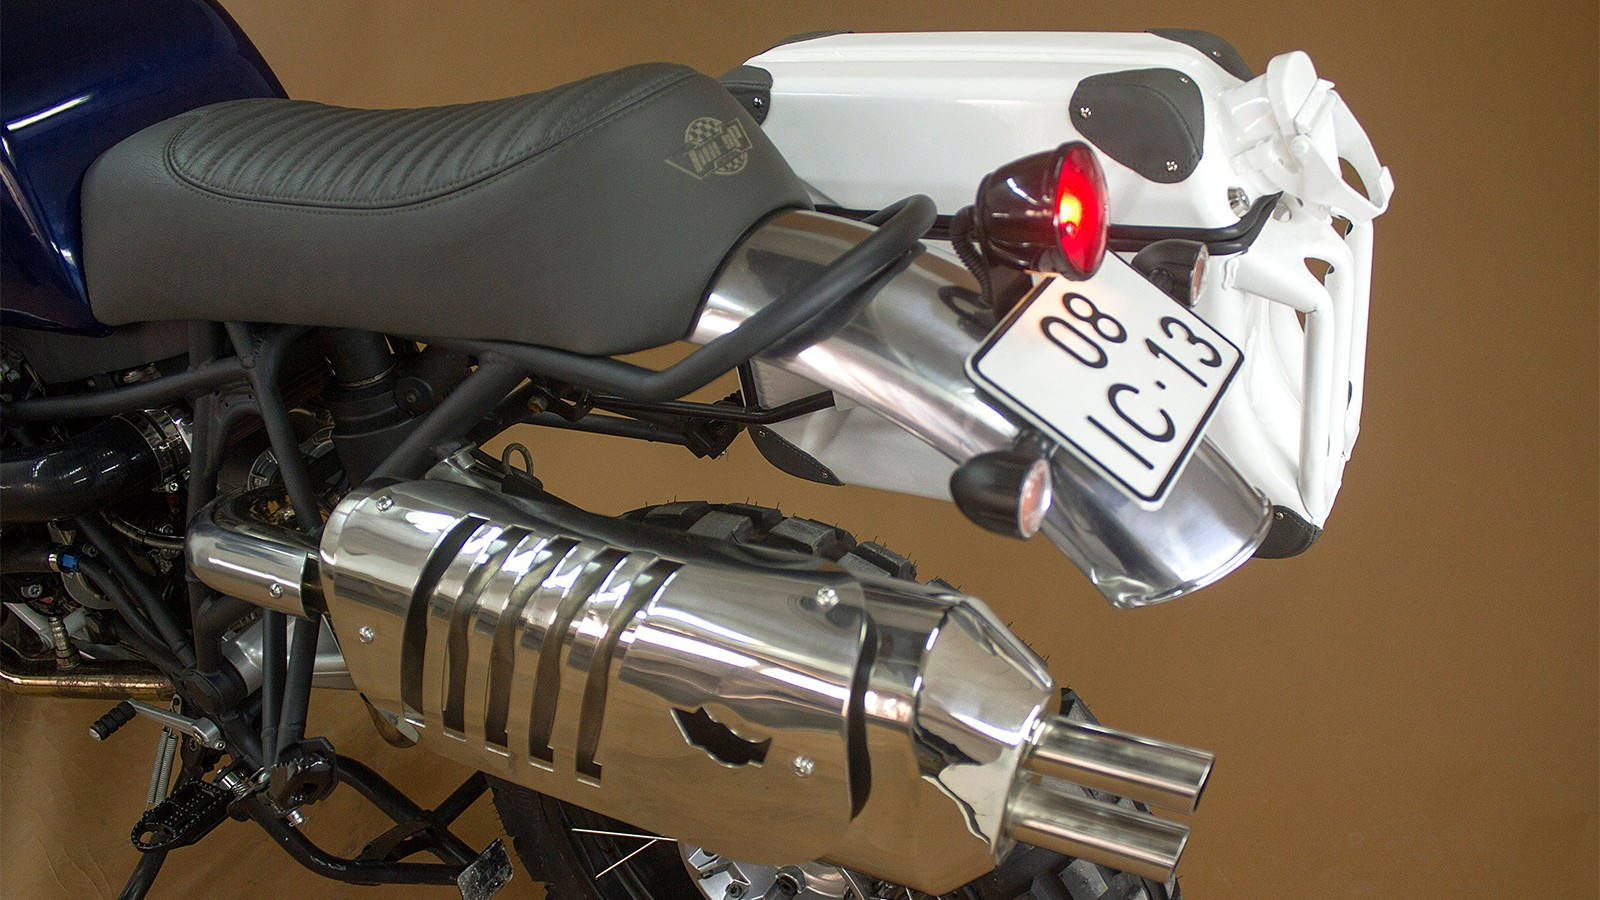 GS HUNTER 1200